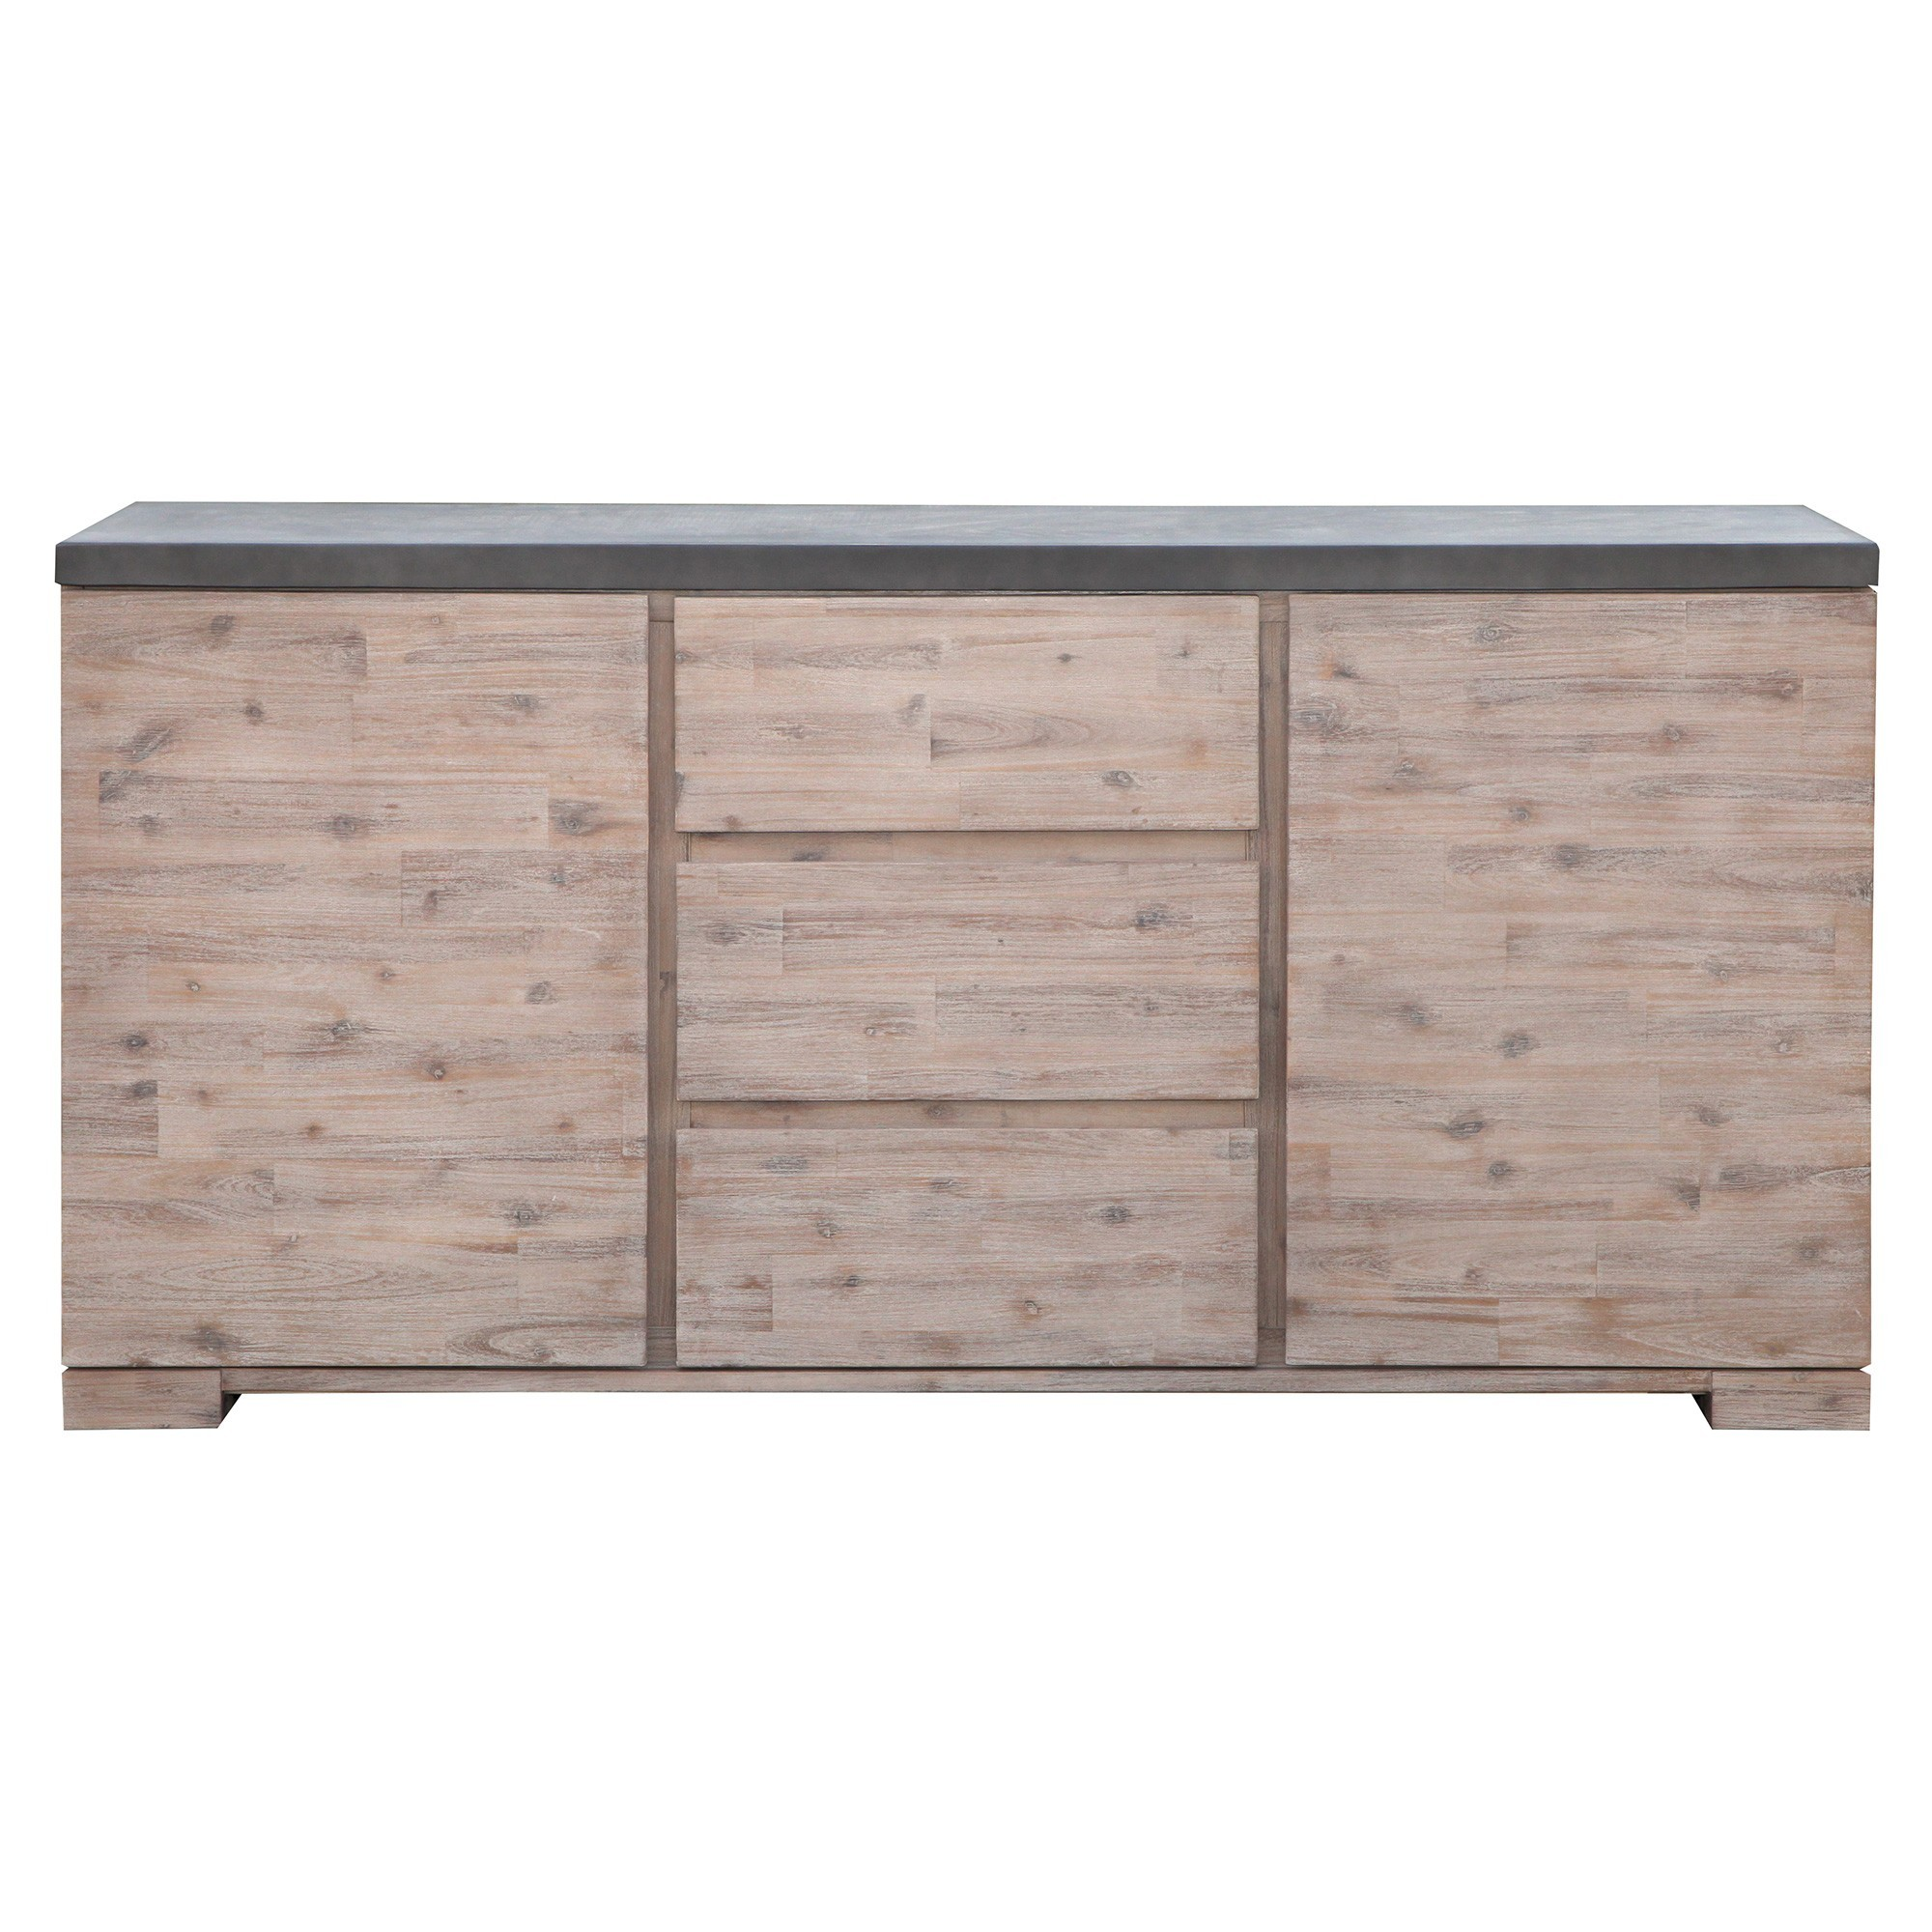 Pesaro Concrete Top Acacia Timber 2 Door 3 Drawer Buffet Table, 160cm